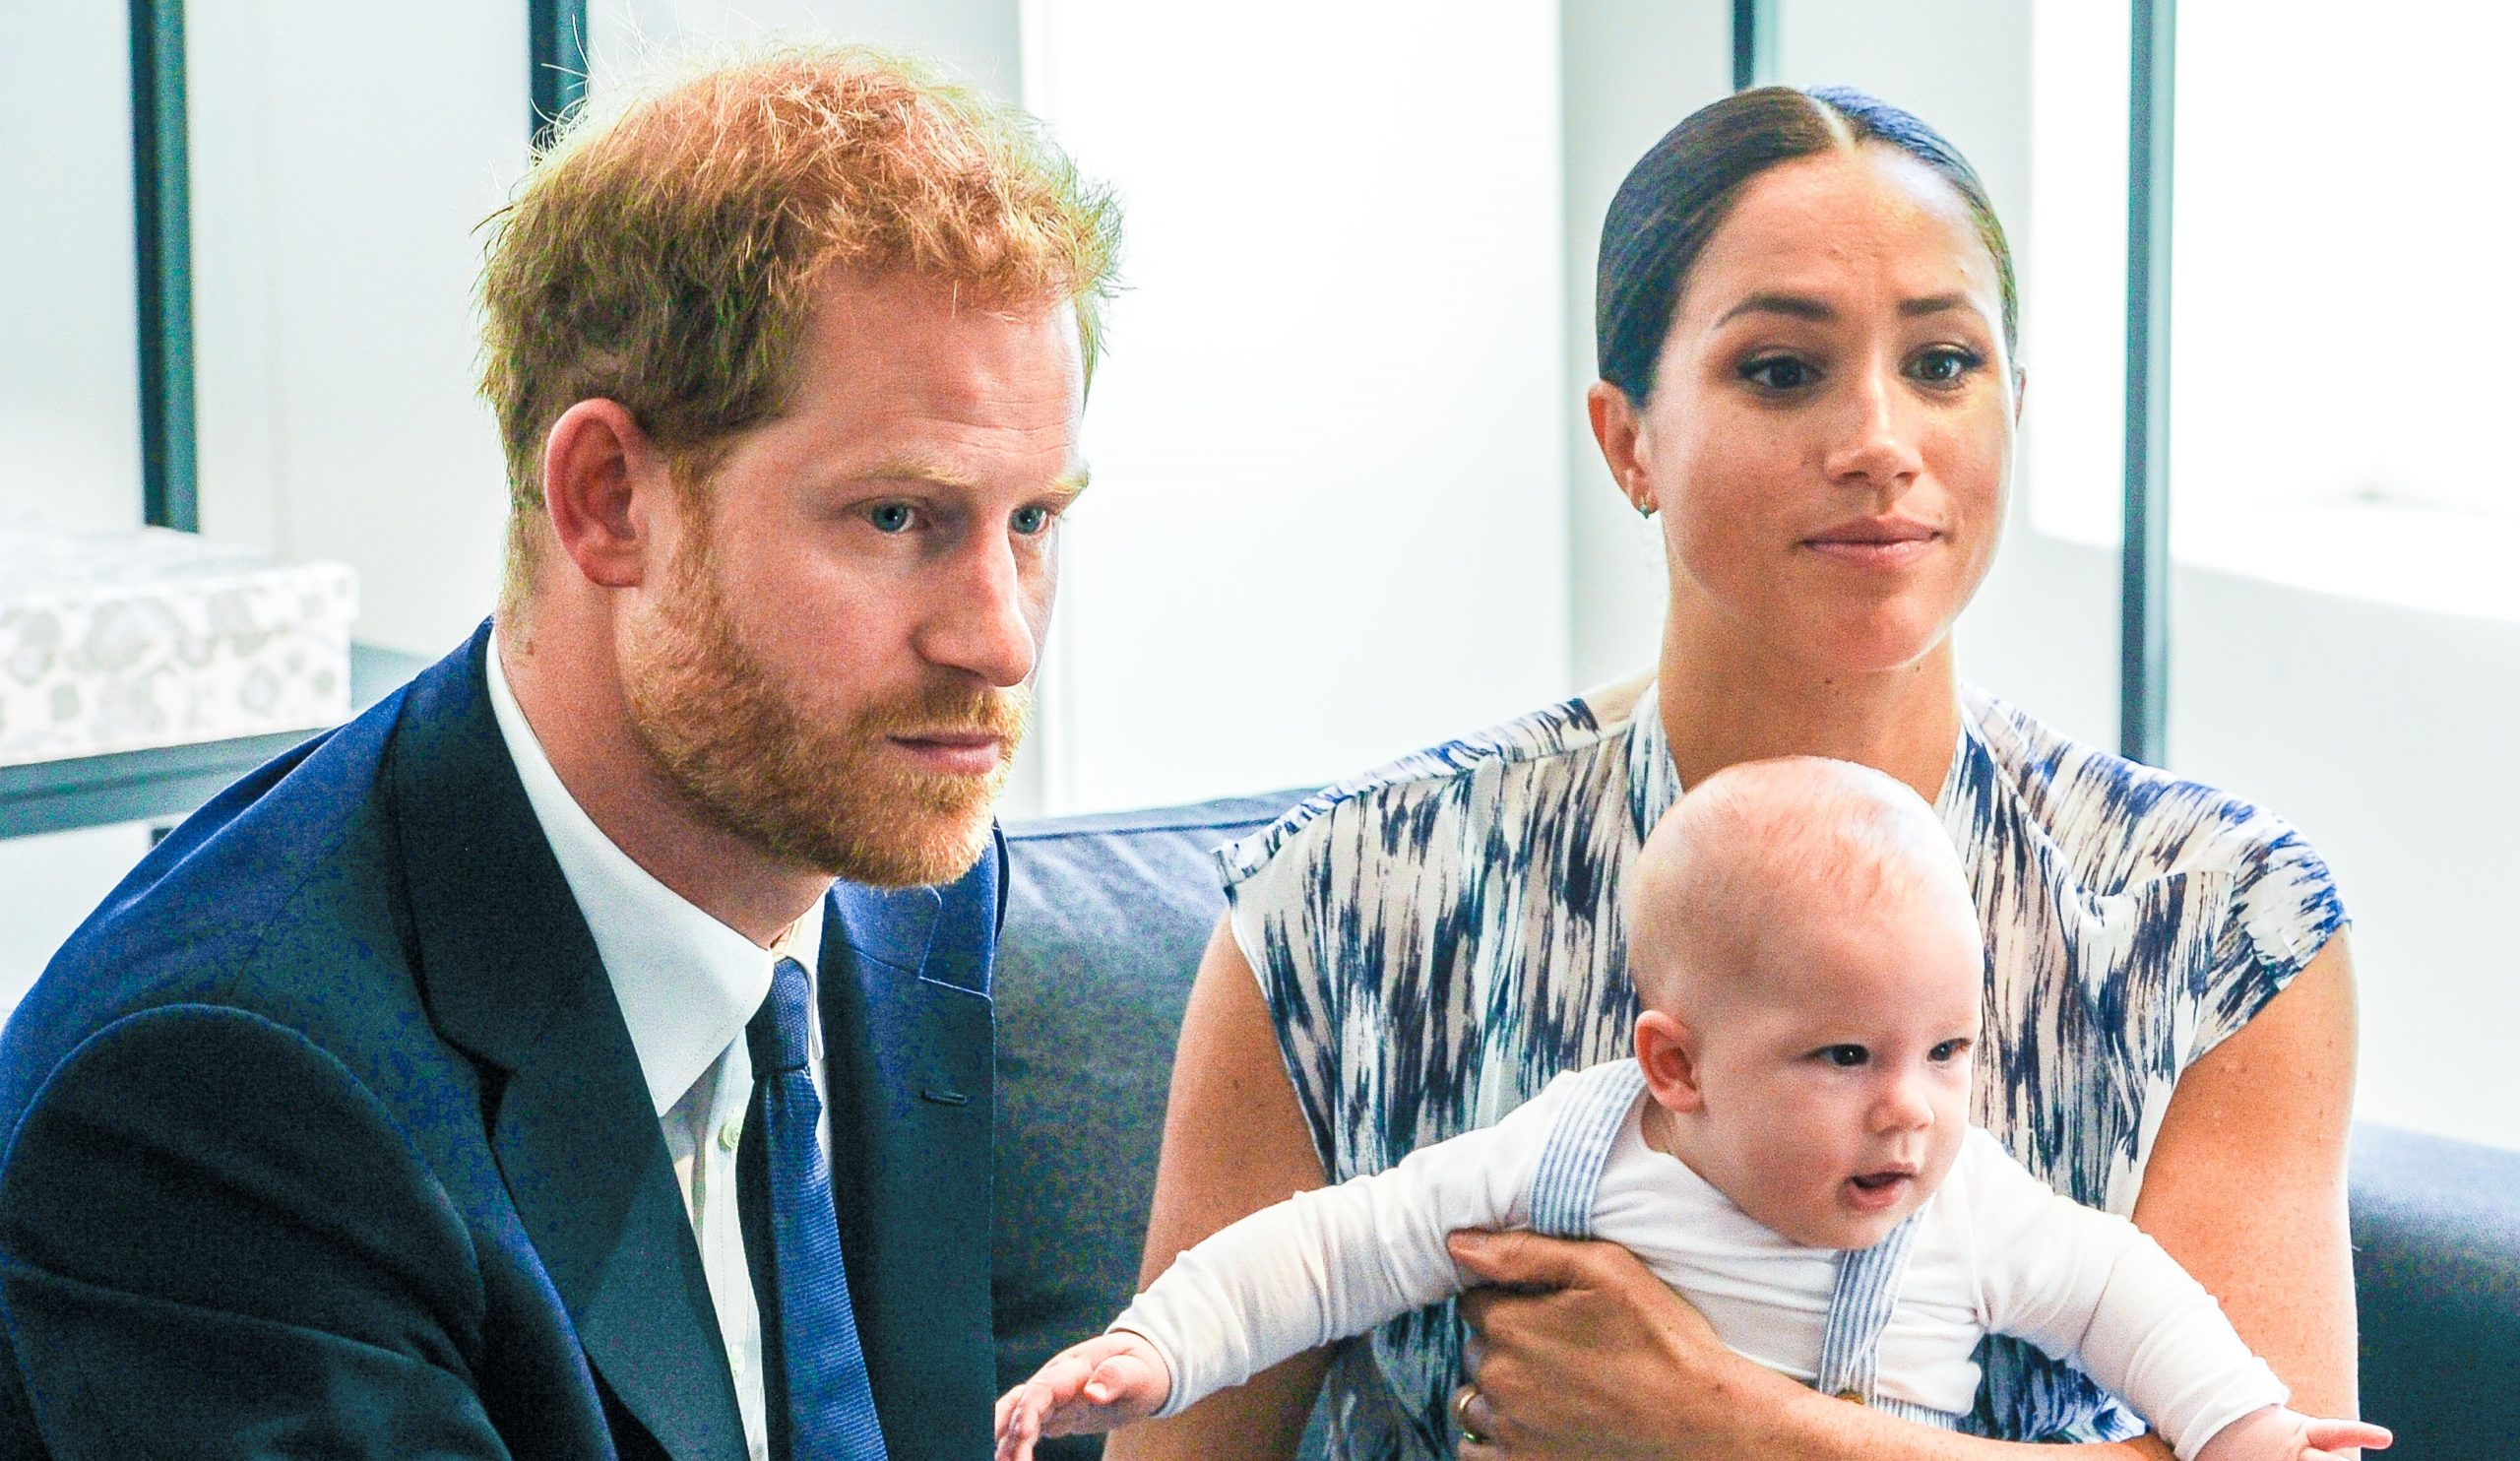 Bookies say Harry and Meghan will announce another baby in 2020 as Archie turns one